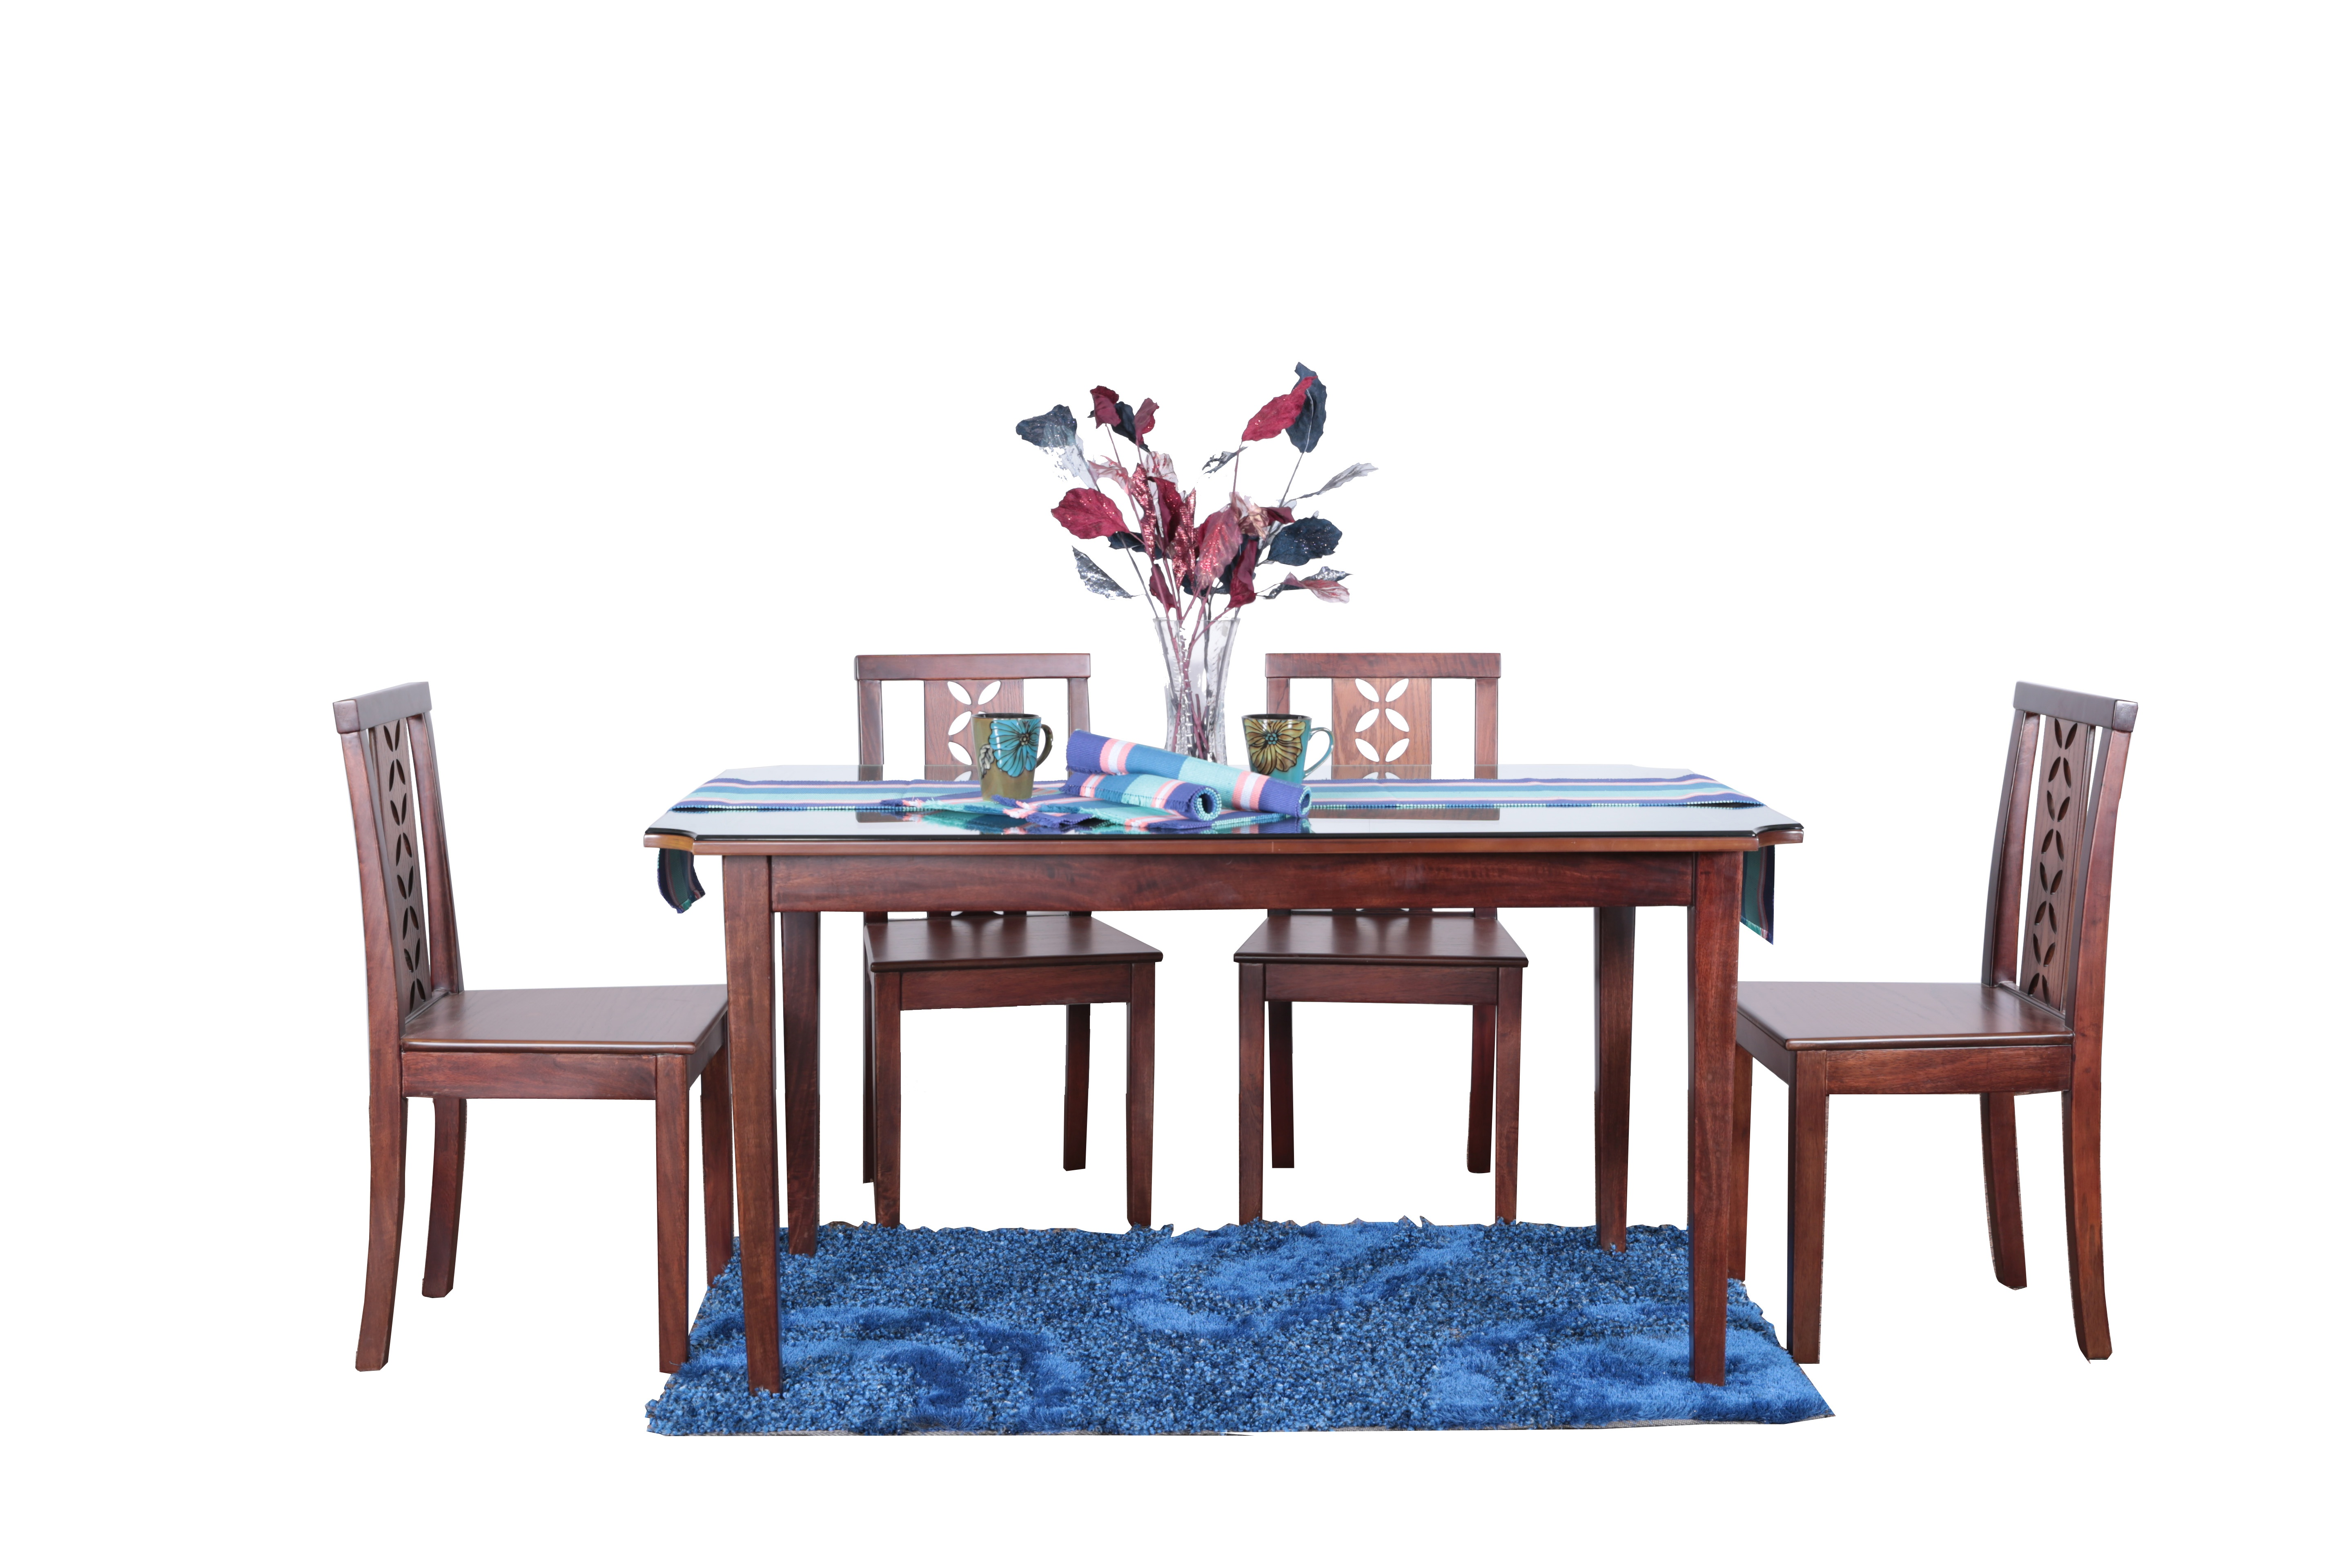 Partex Modern Home Furniture Series - Exclusive Dining Set